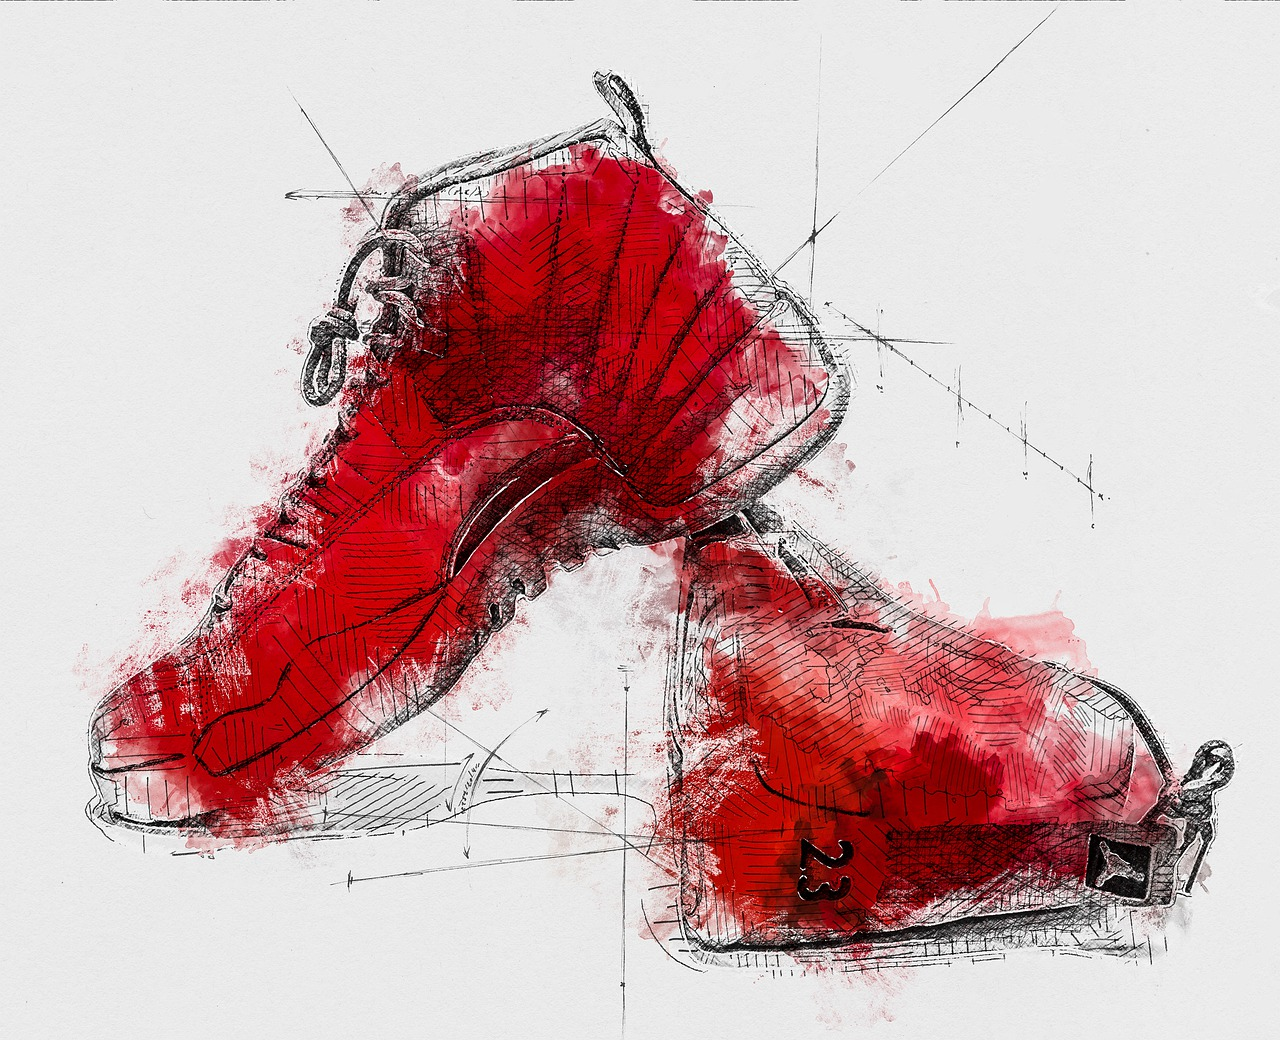 Shoe sketching in watercolour